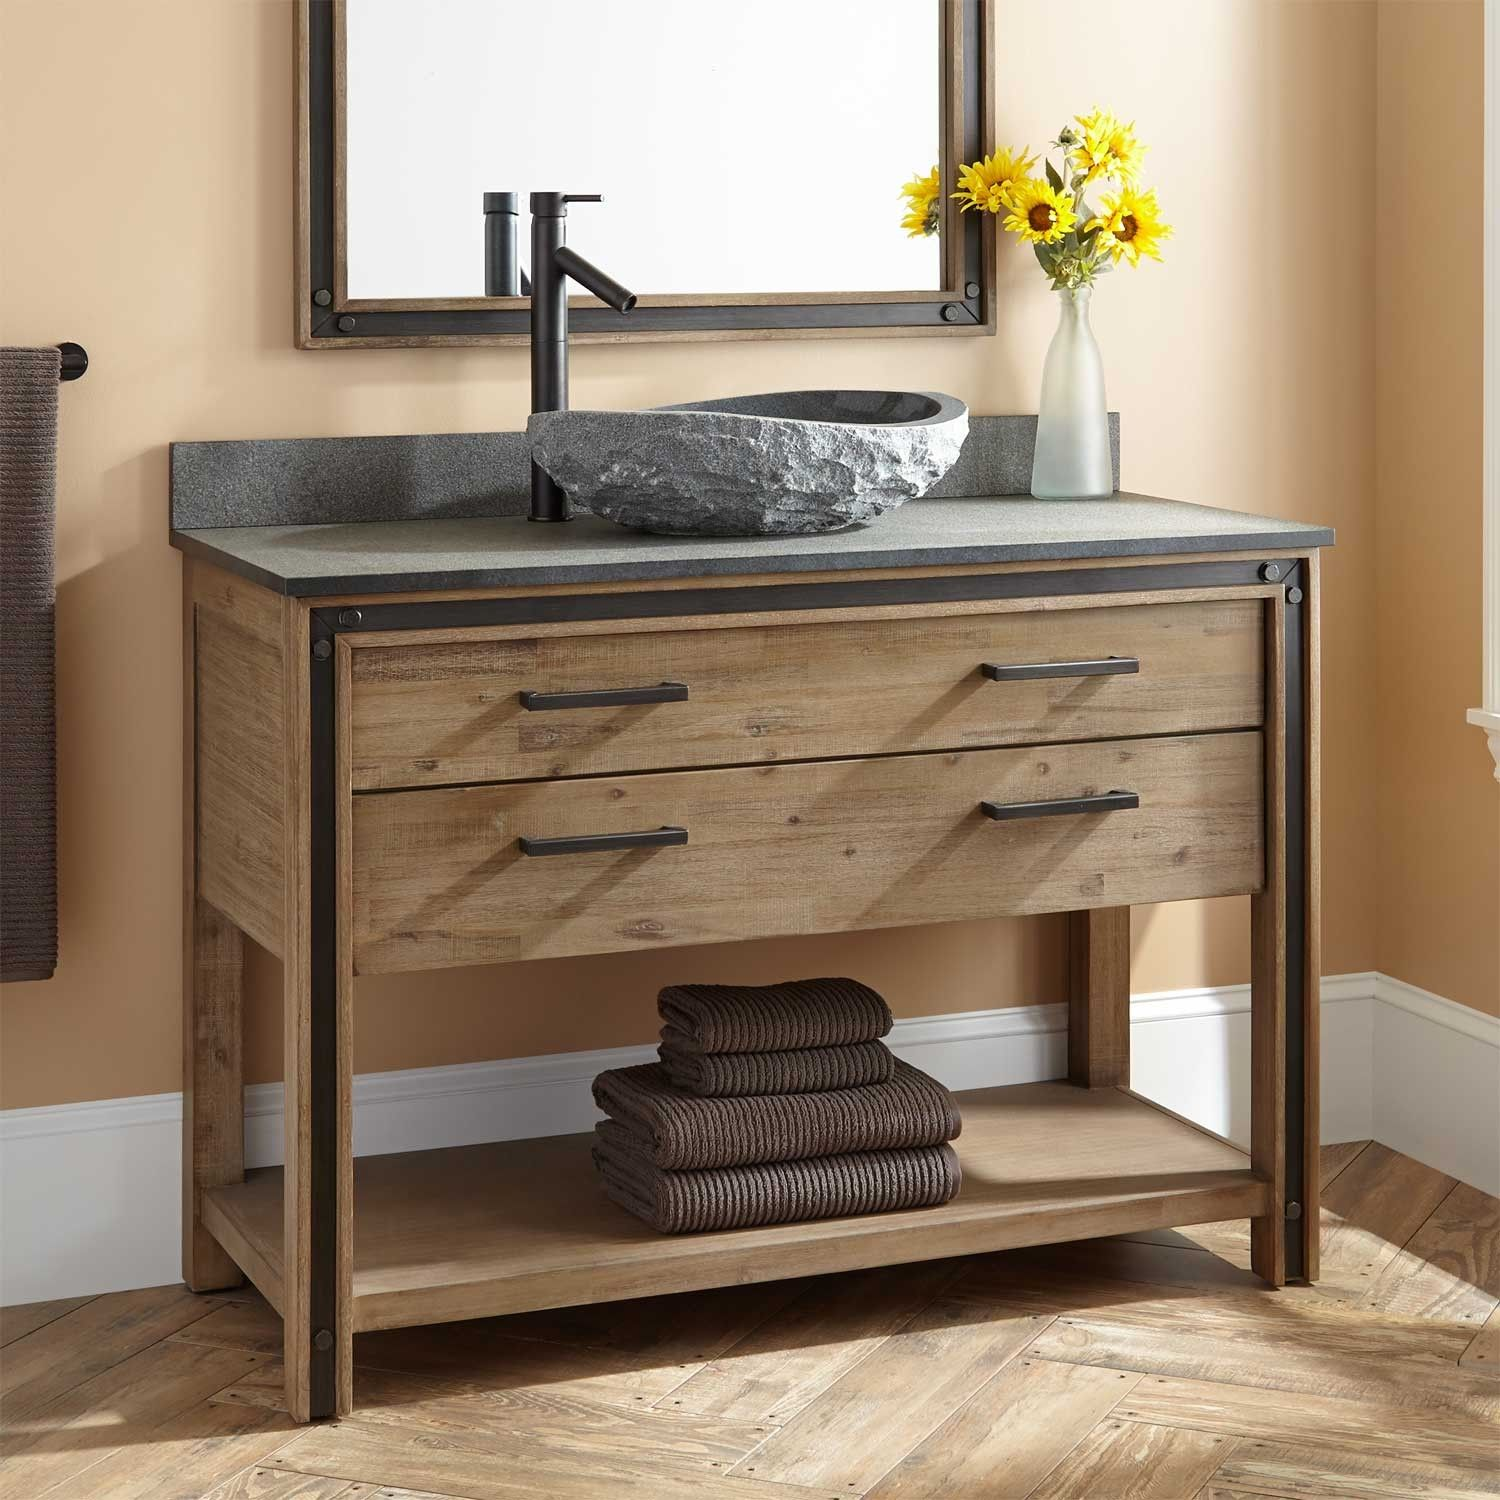 sinks double bathroom tobacco with for madison vanity sink vessel